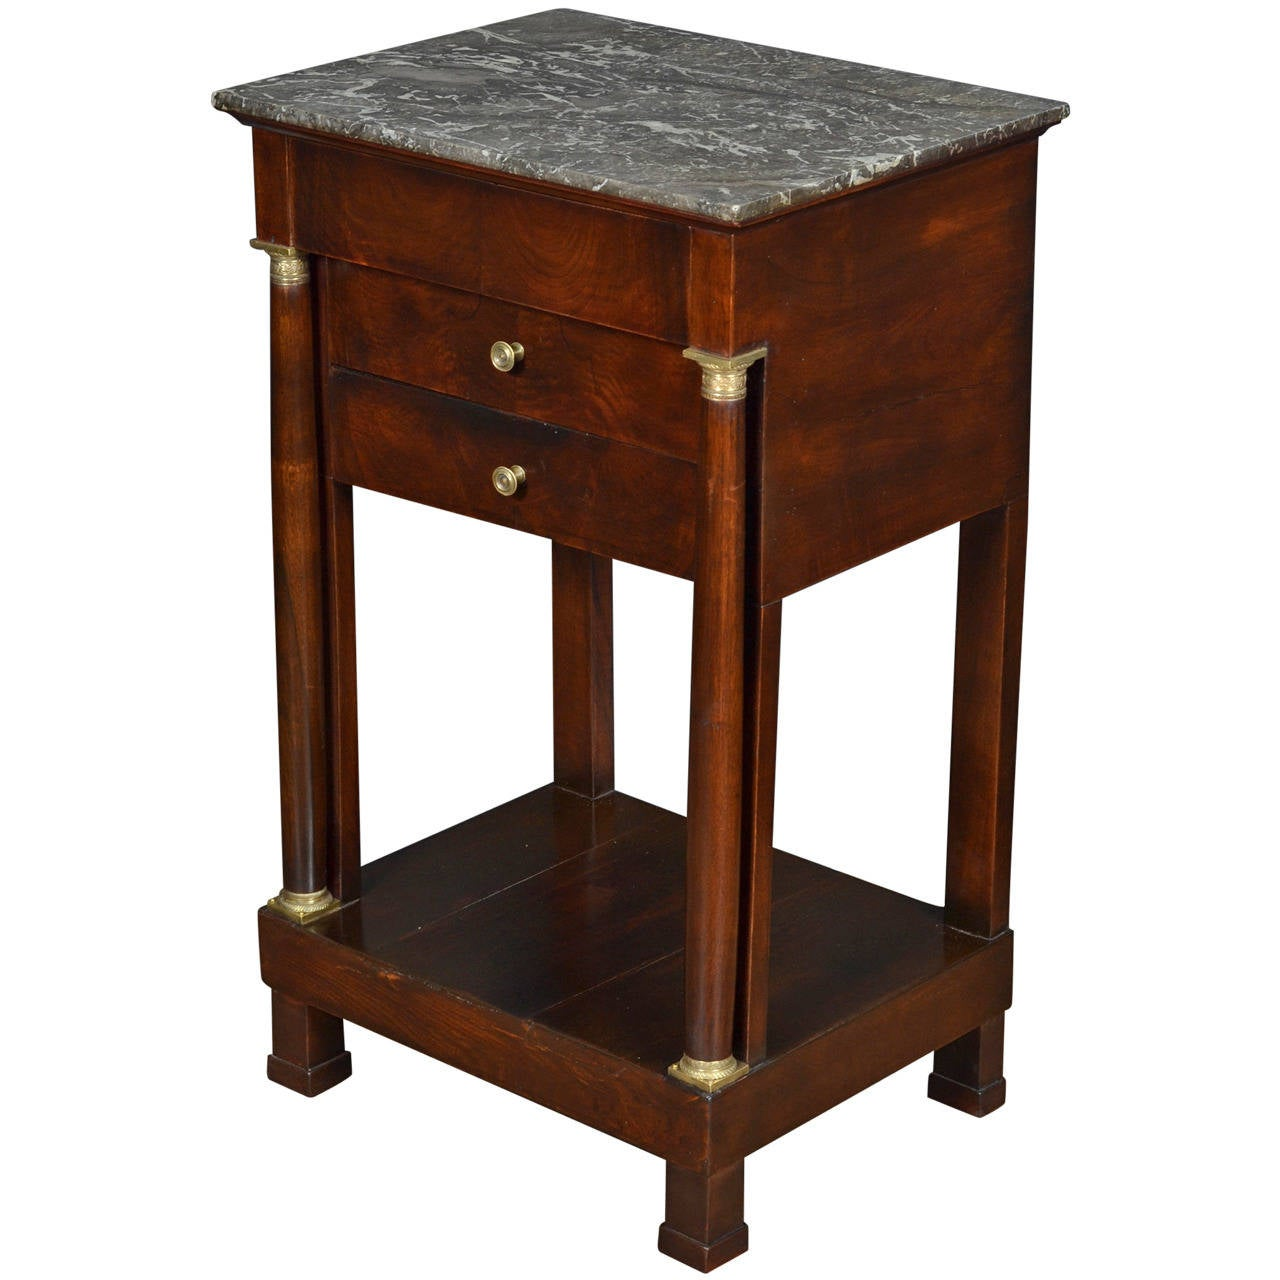 antique french empire period side table at 1stdibs